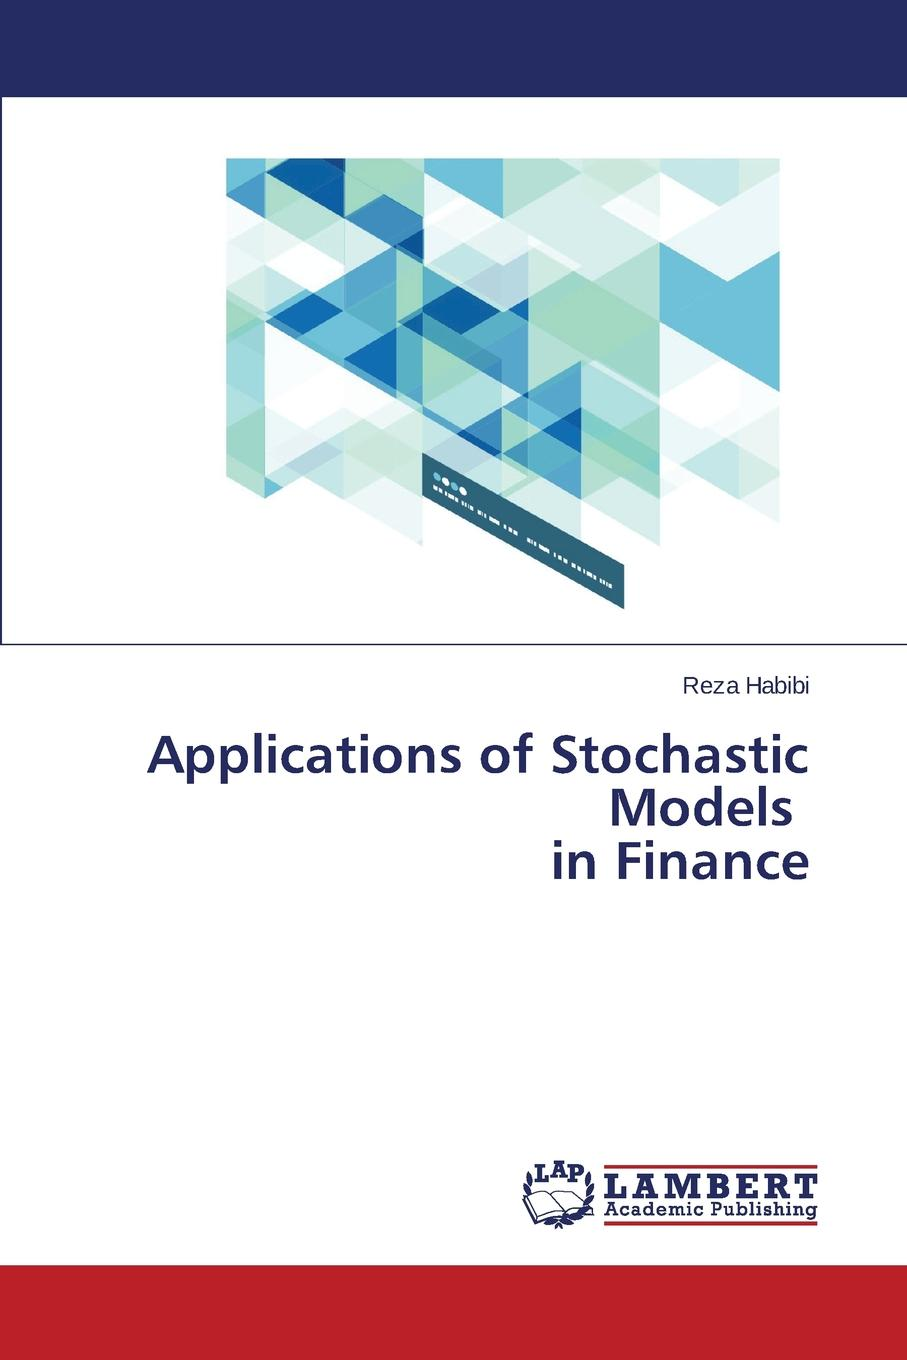 Habibi Reza Applications of Stochastic Models in Finance allan malz m financial risk management models history and institutions